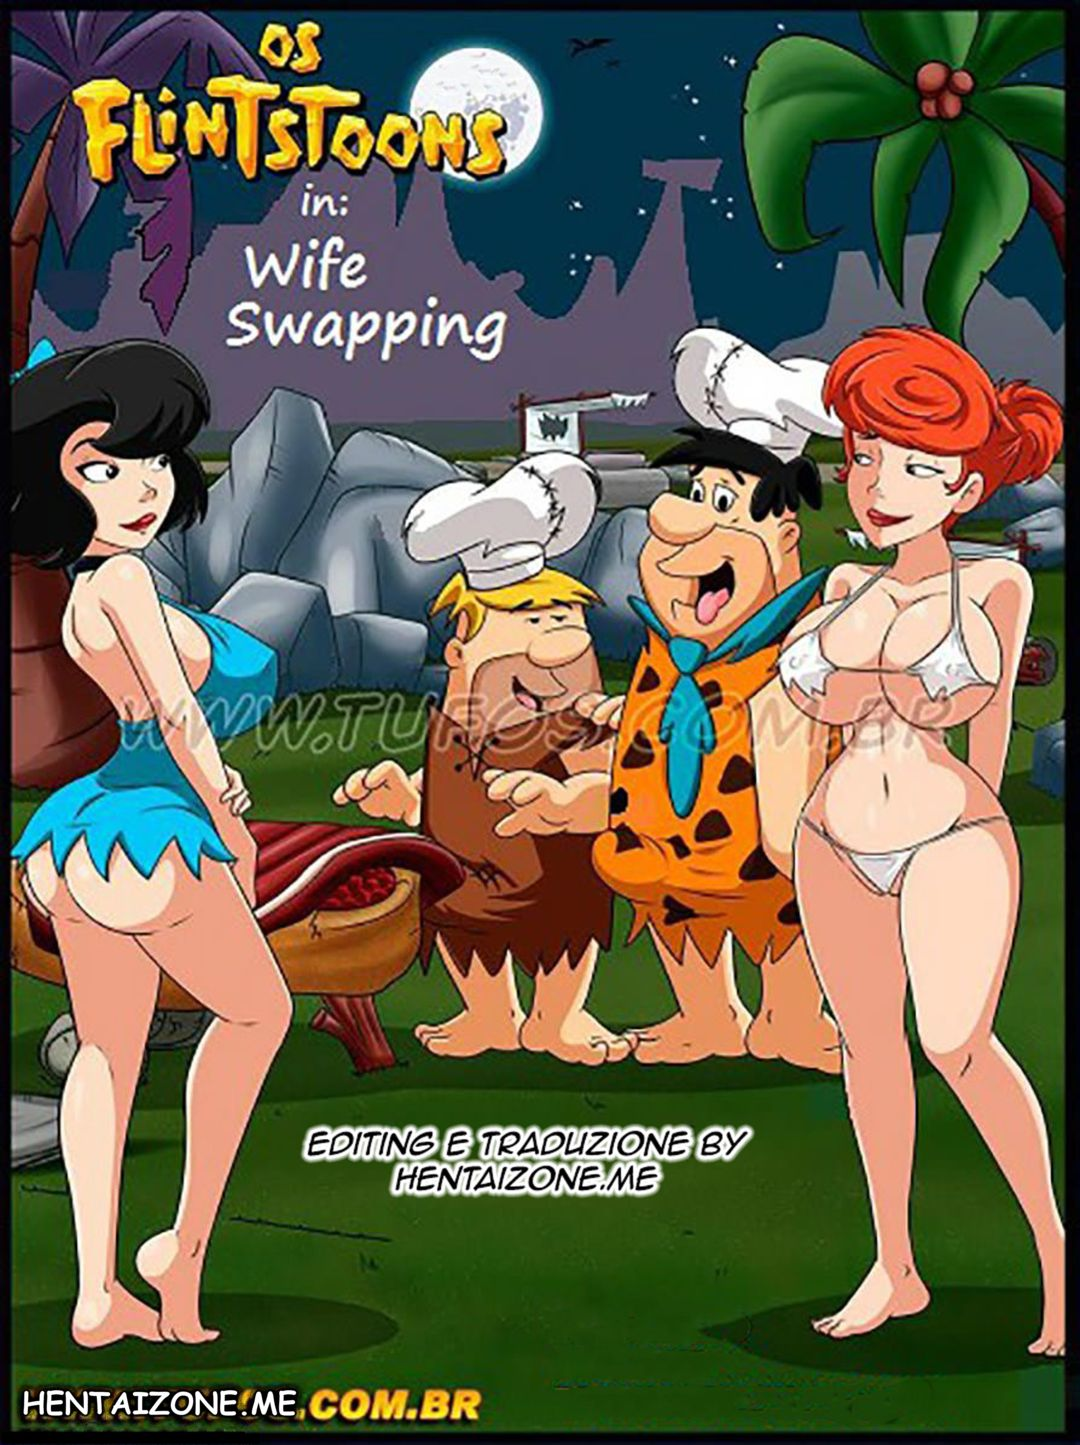 Flintstones sex porno full color wilma e betty sesso nude cn tette giganti